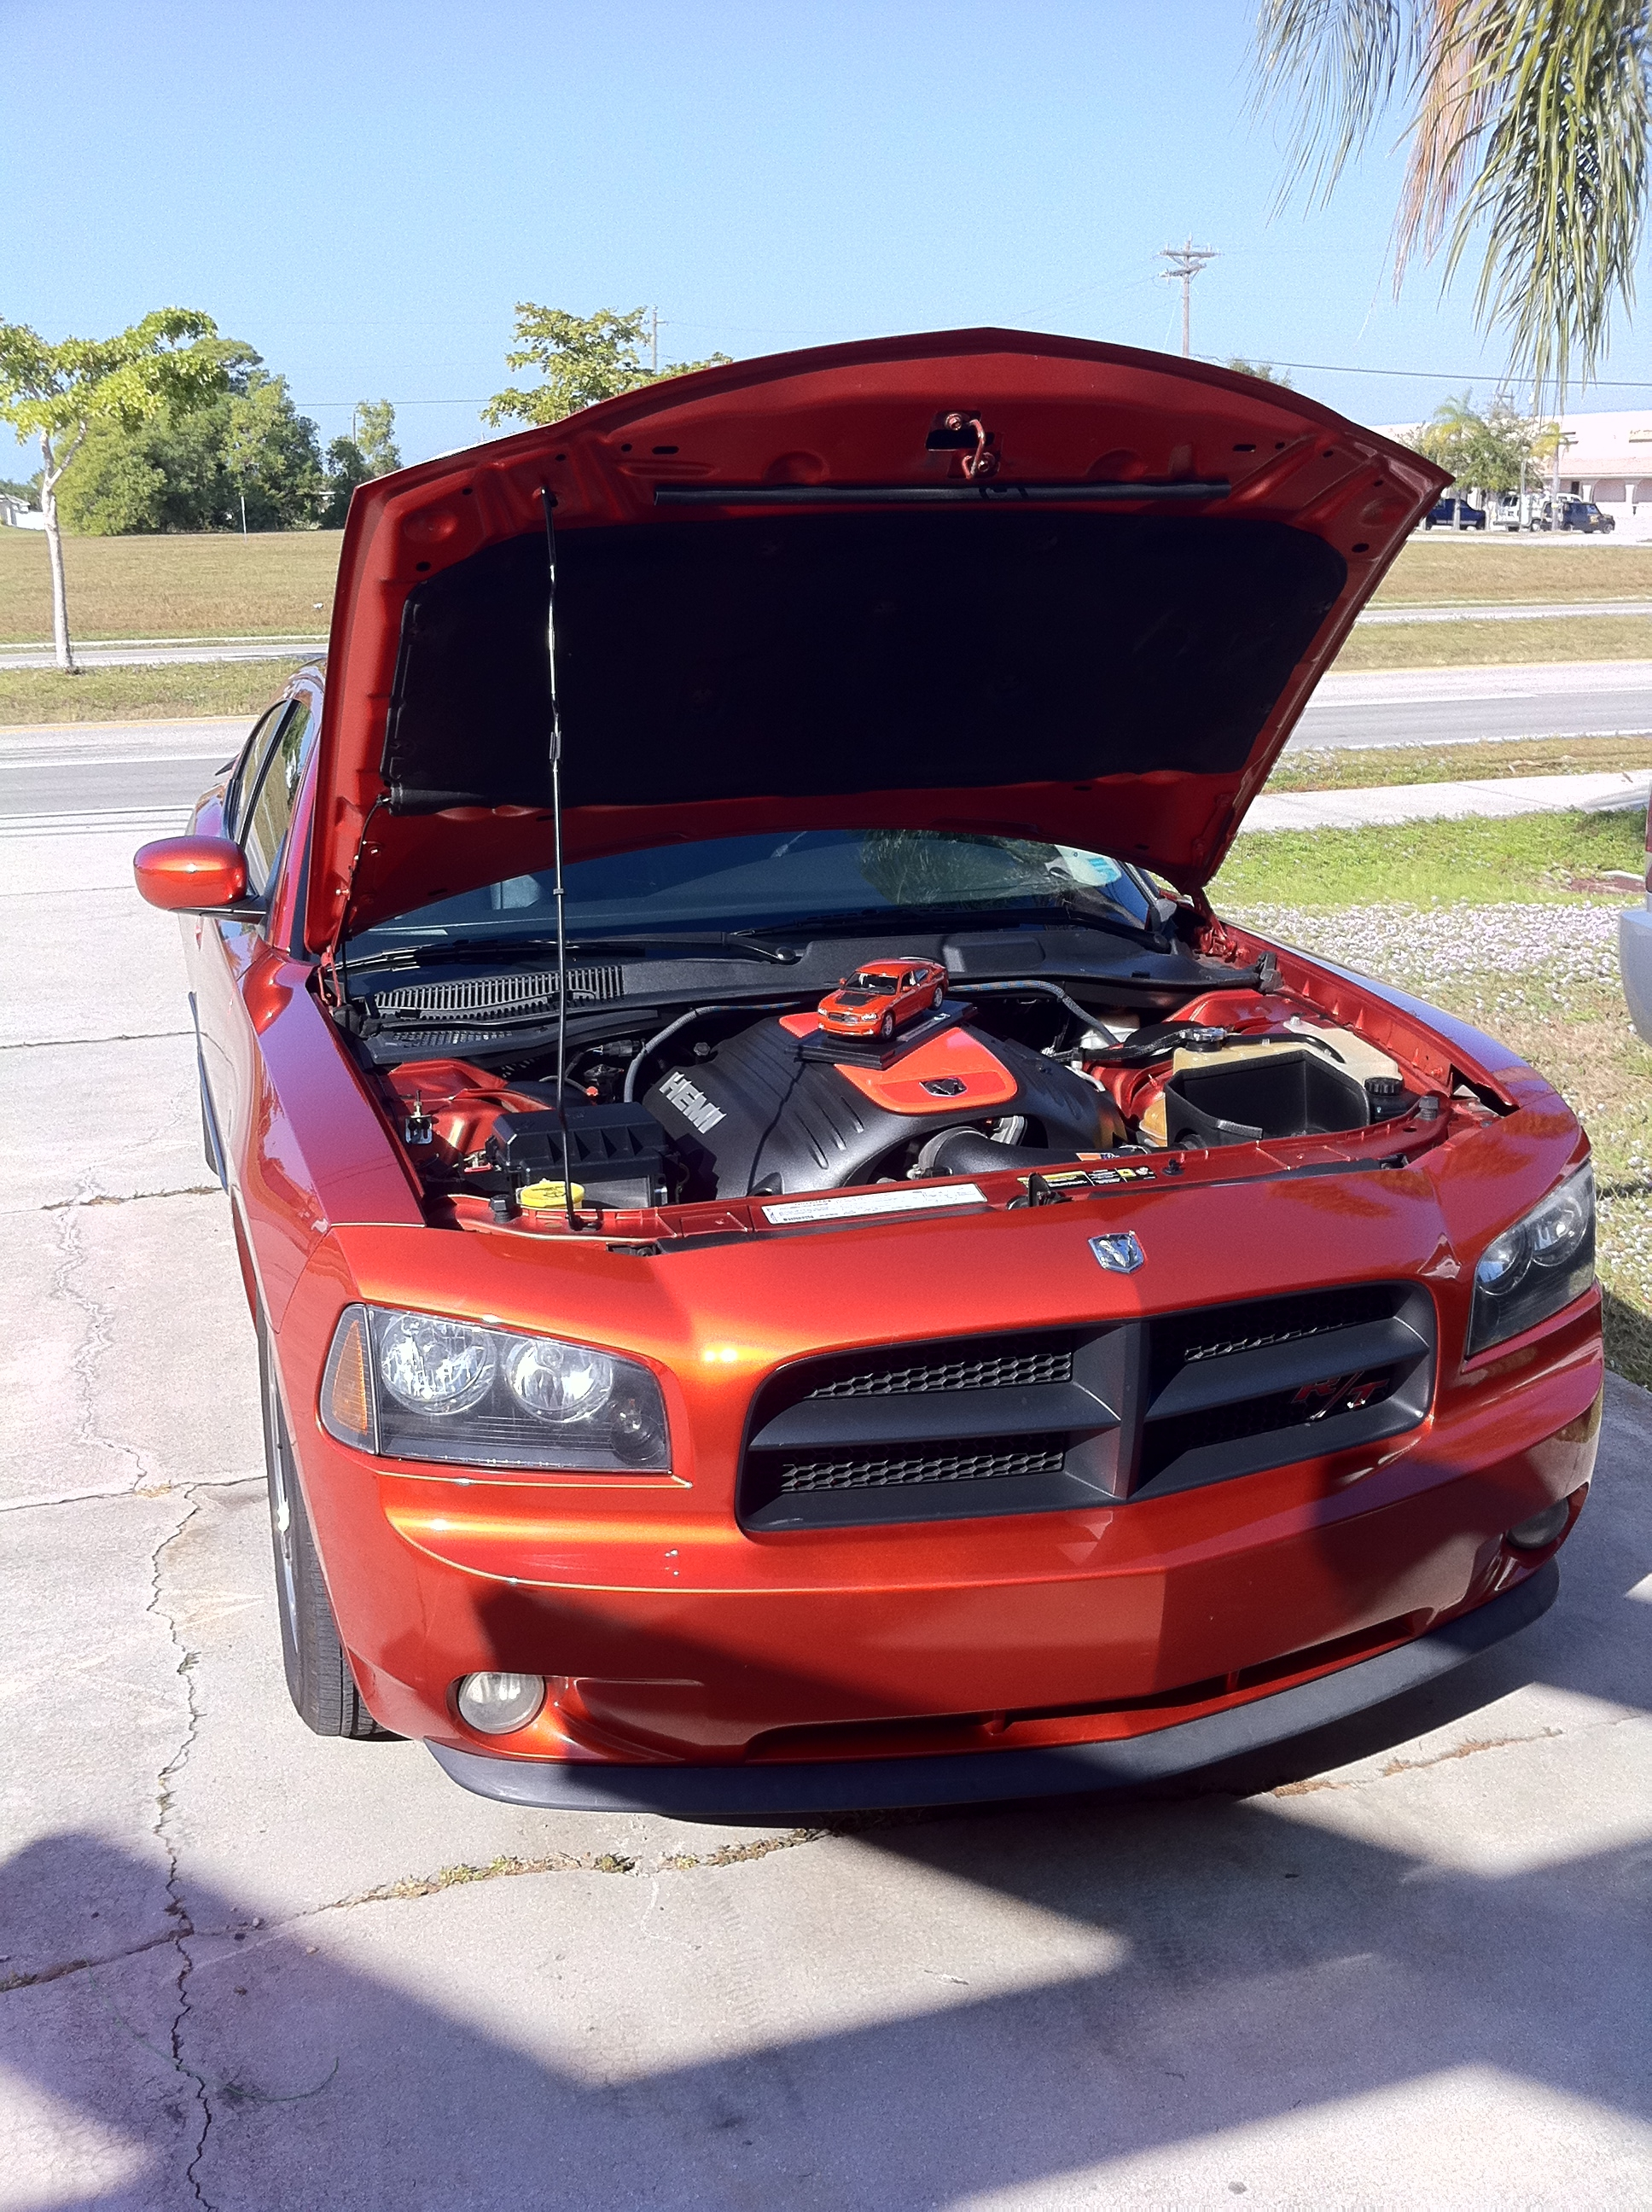 2006 Dodge Charger Rt: Rlma84's 2006 Dodge Charger R/T Sedan 4D In Cape Coral, FL